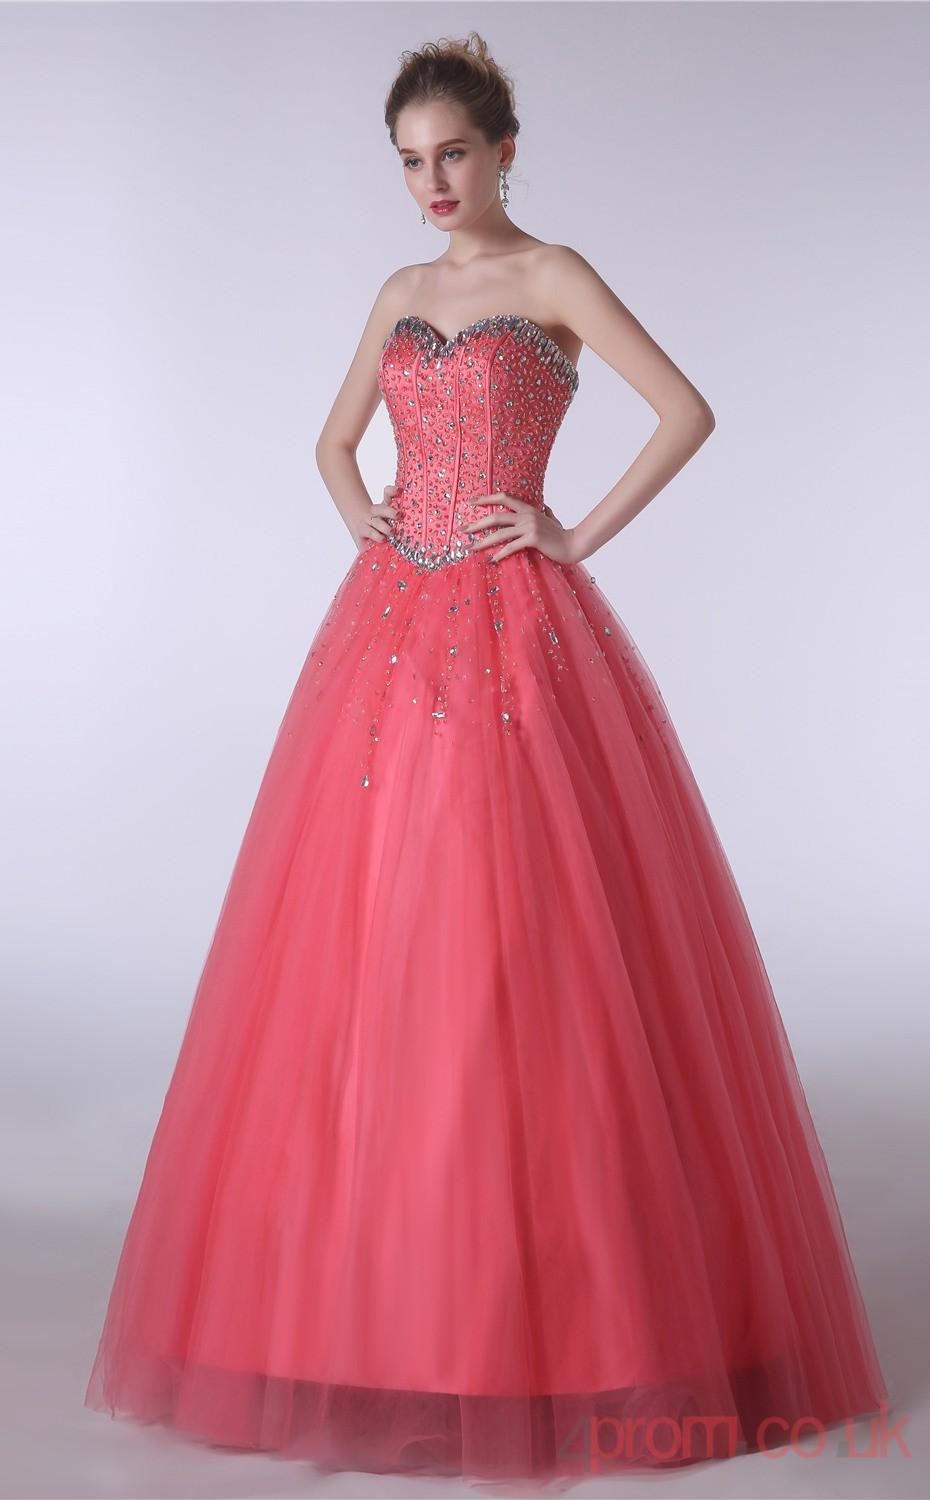 Watermelon Tulle Strenth Satin Ball Gown Sweetheart Sleeveless Prom ...